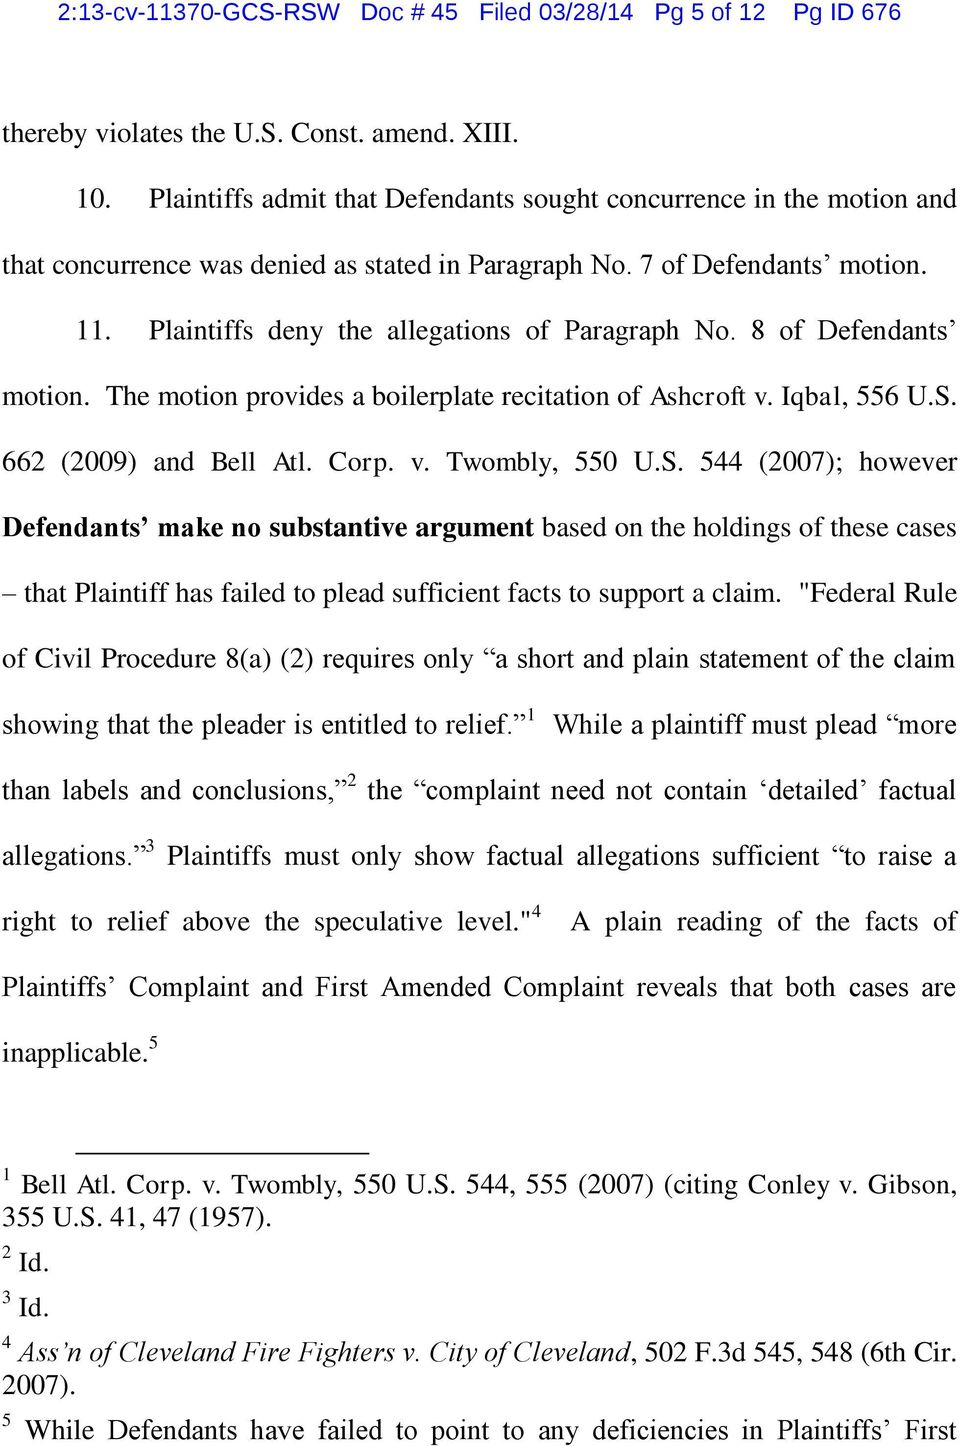 Plaintiffs deny the allegations of Paragraph No. 8 of Defendants motion. The motion provides a boilerplate recitation of Ashcroft v. Iqbal, 556 U.S.